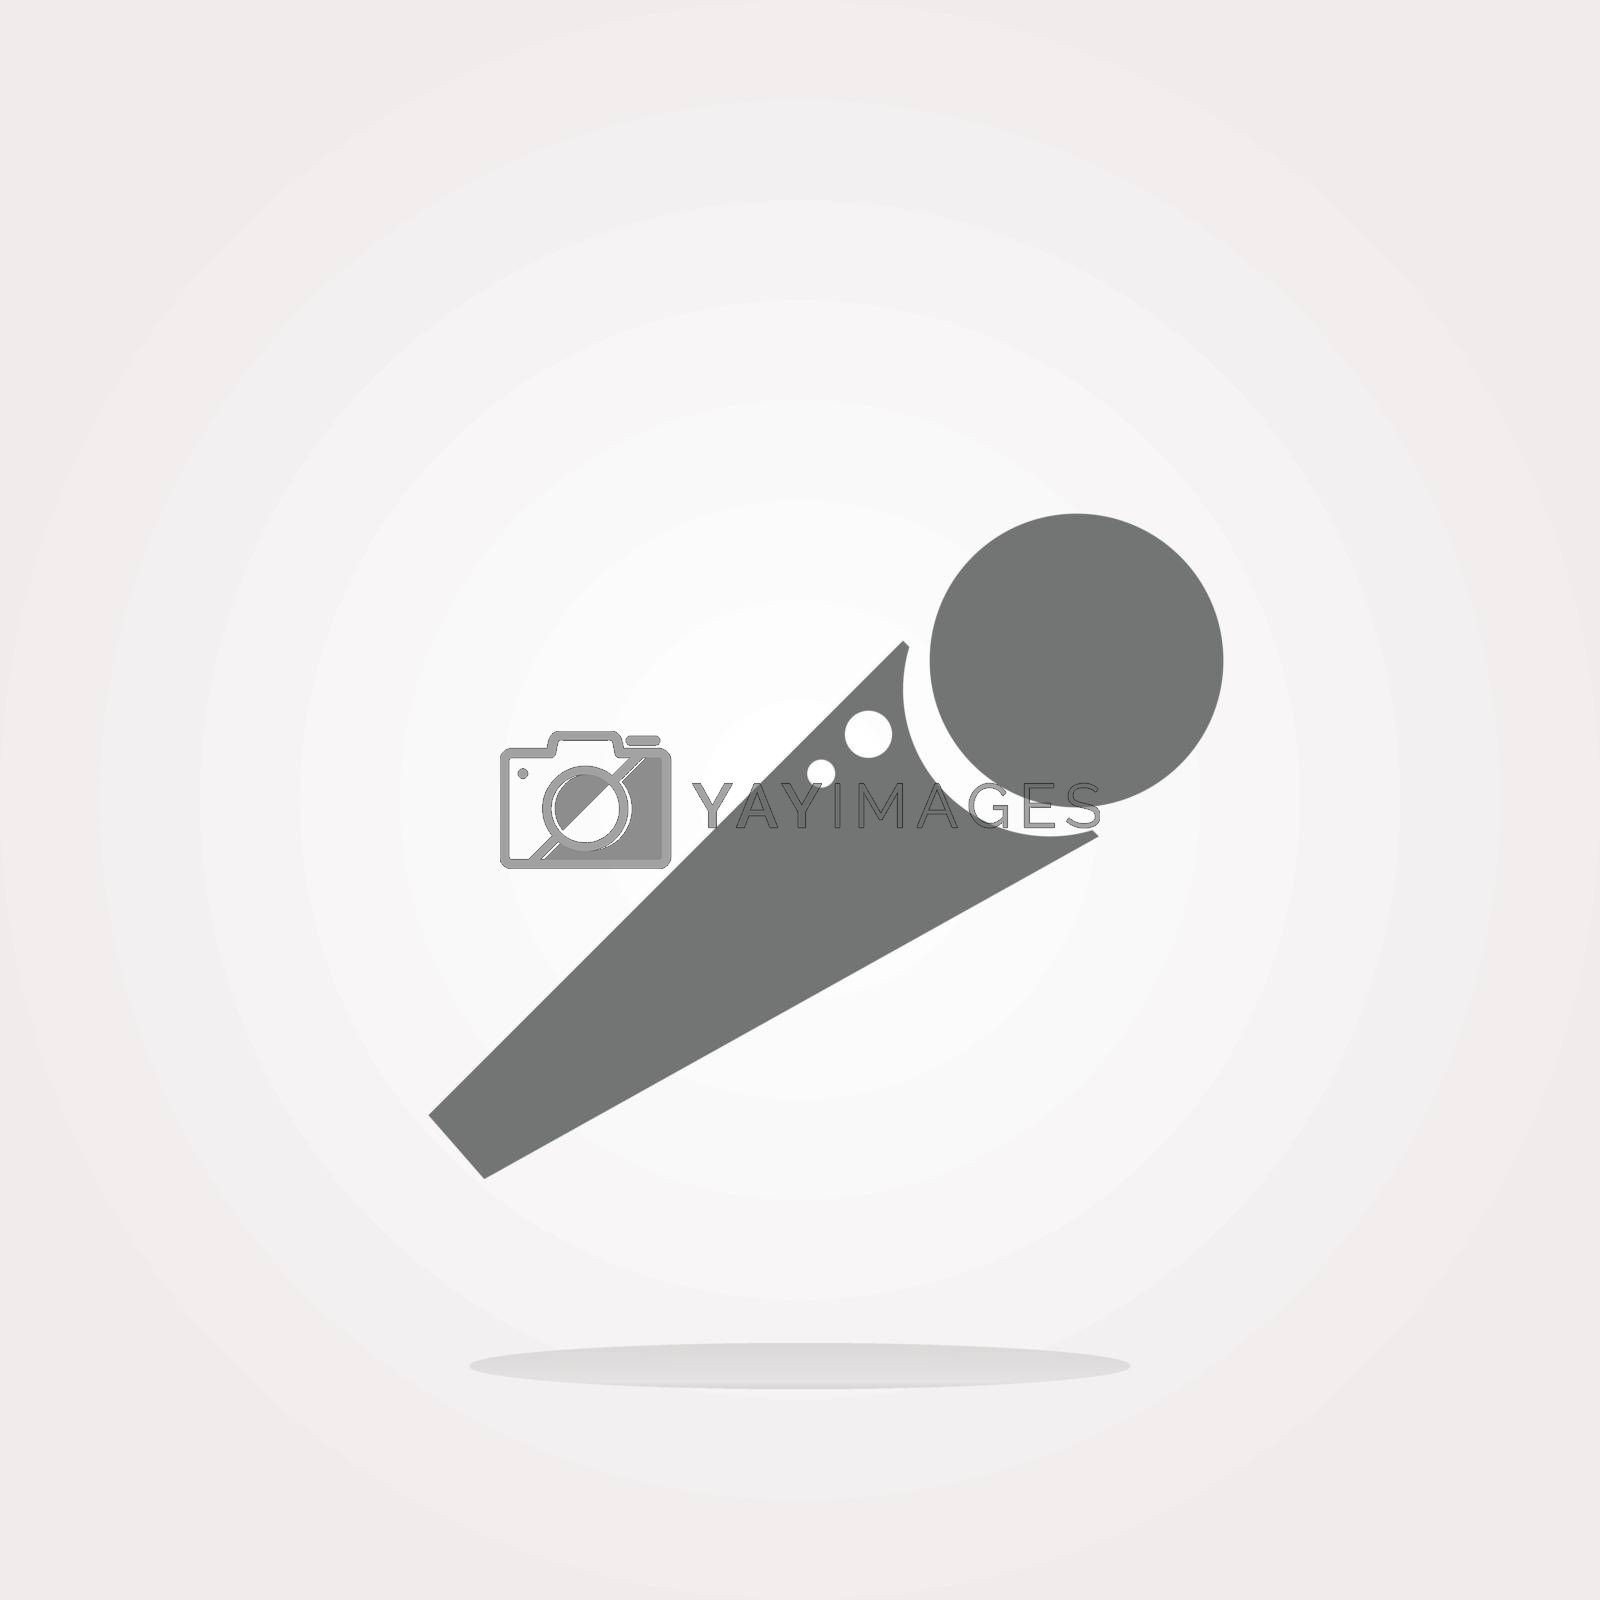 Microphone Icon, microphone icon flat, microphone icon picture, microphone icon vector, microphone icon EPS10, microphone icon graphic, microphone icon object, microphone icon JPEG